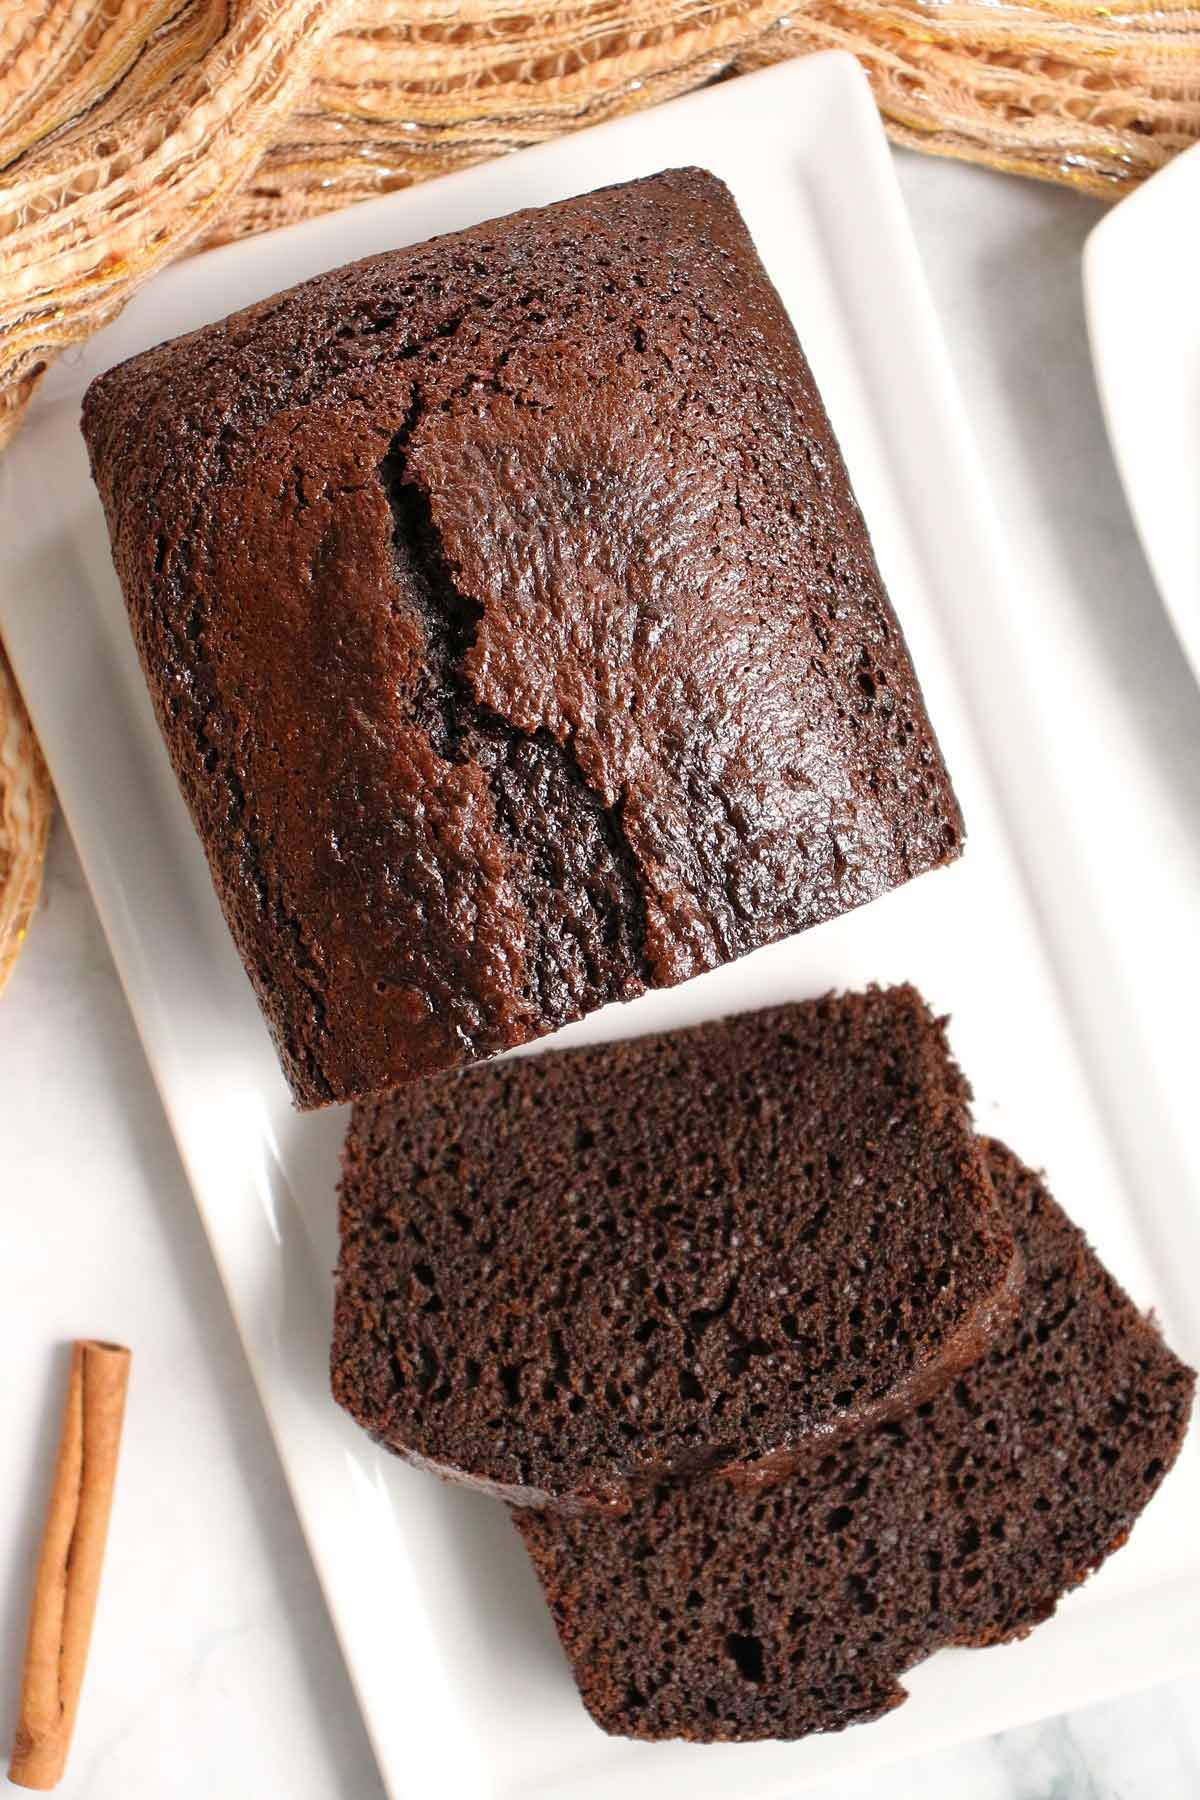 Closeup of a partially sliced loaf of dark brown spice bread on a white rectangular plate.